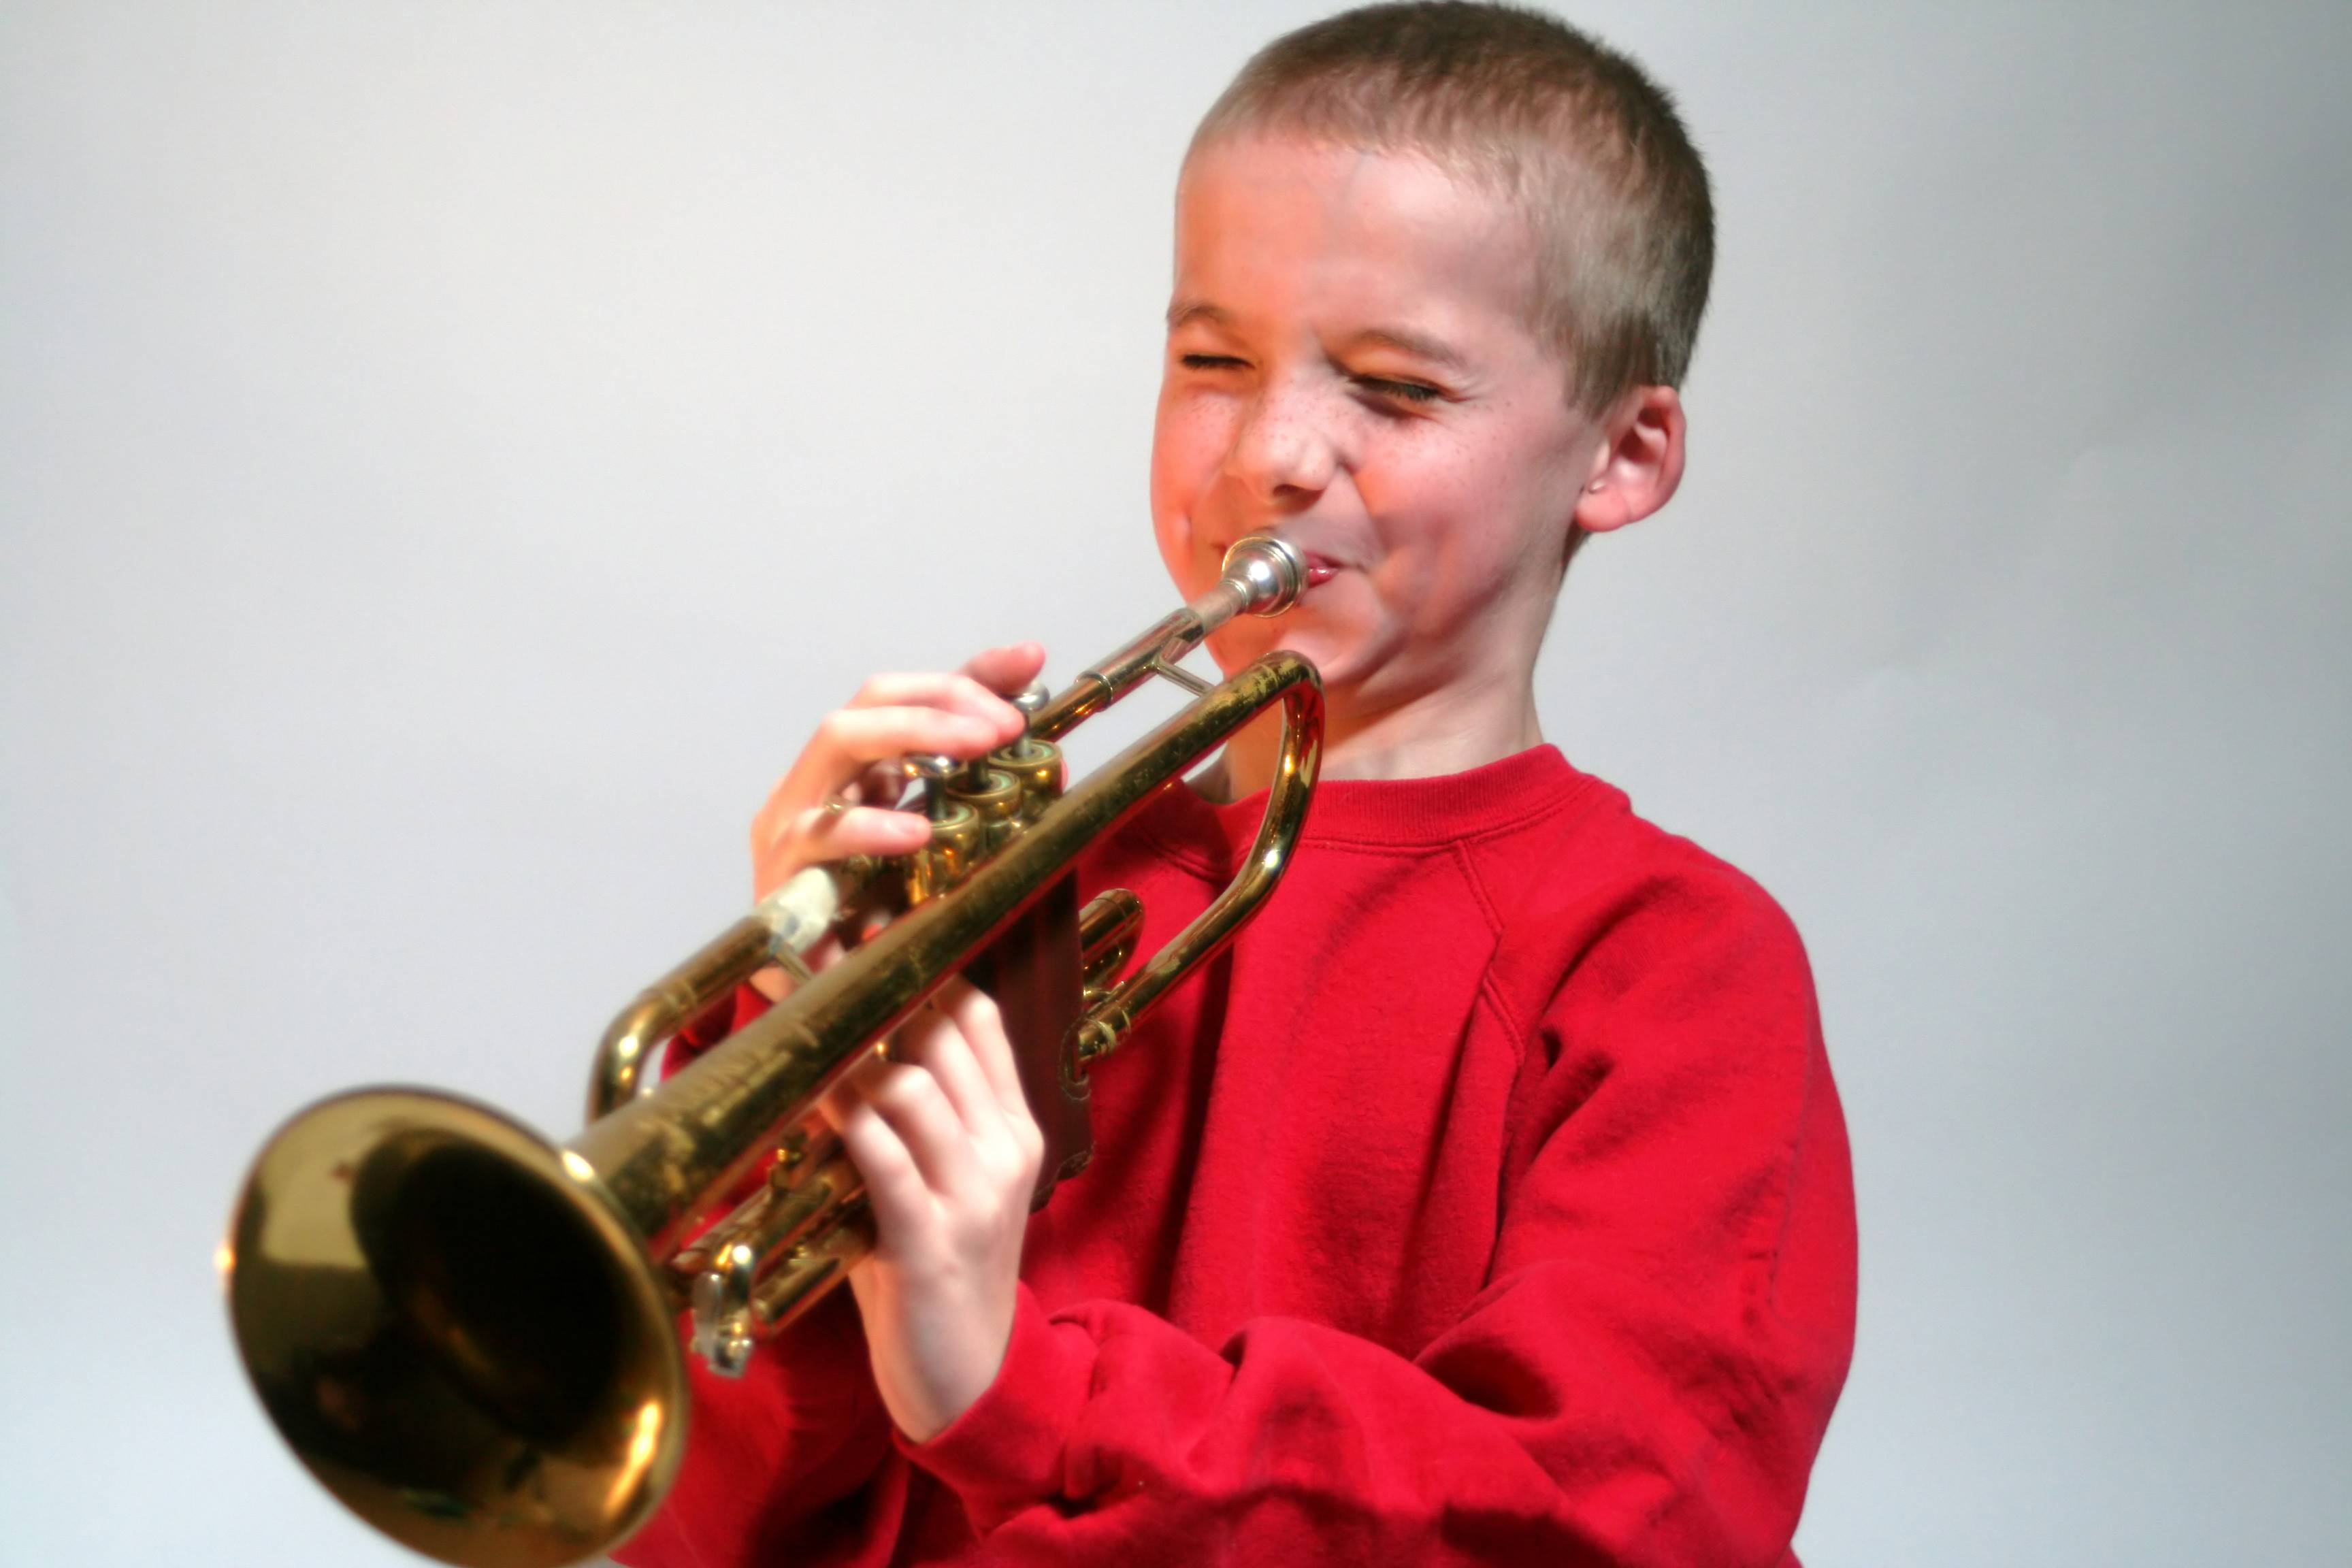 Young boy making a face as he attempts to hit a high note on a trumpet, isolated on a light background.